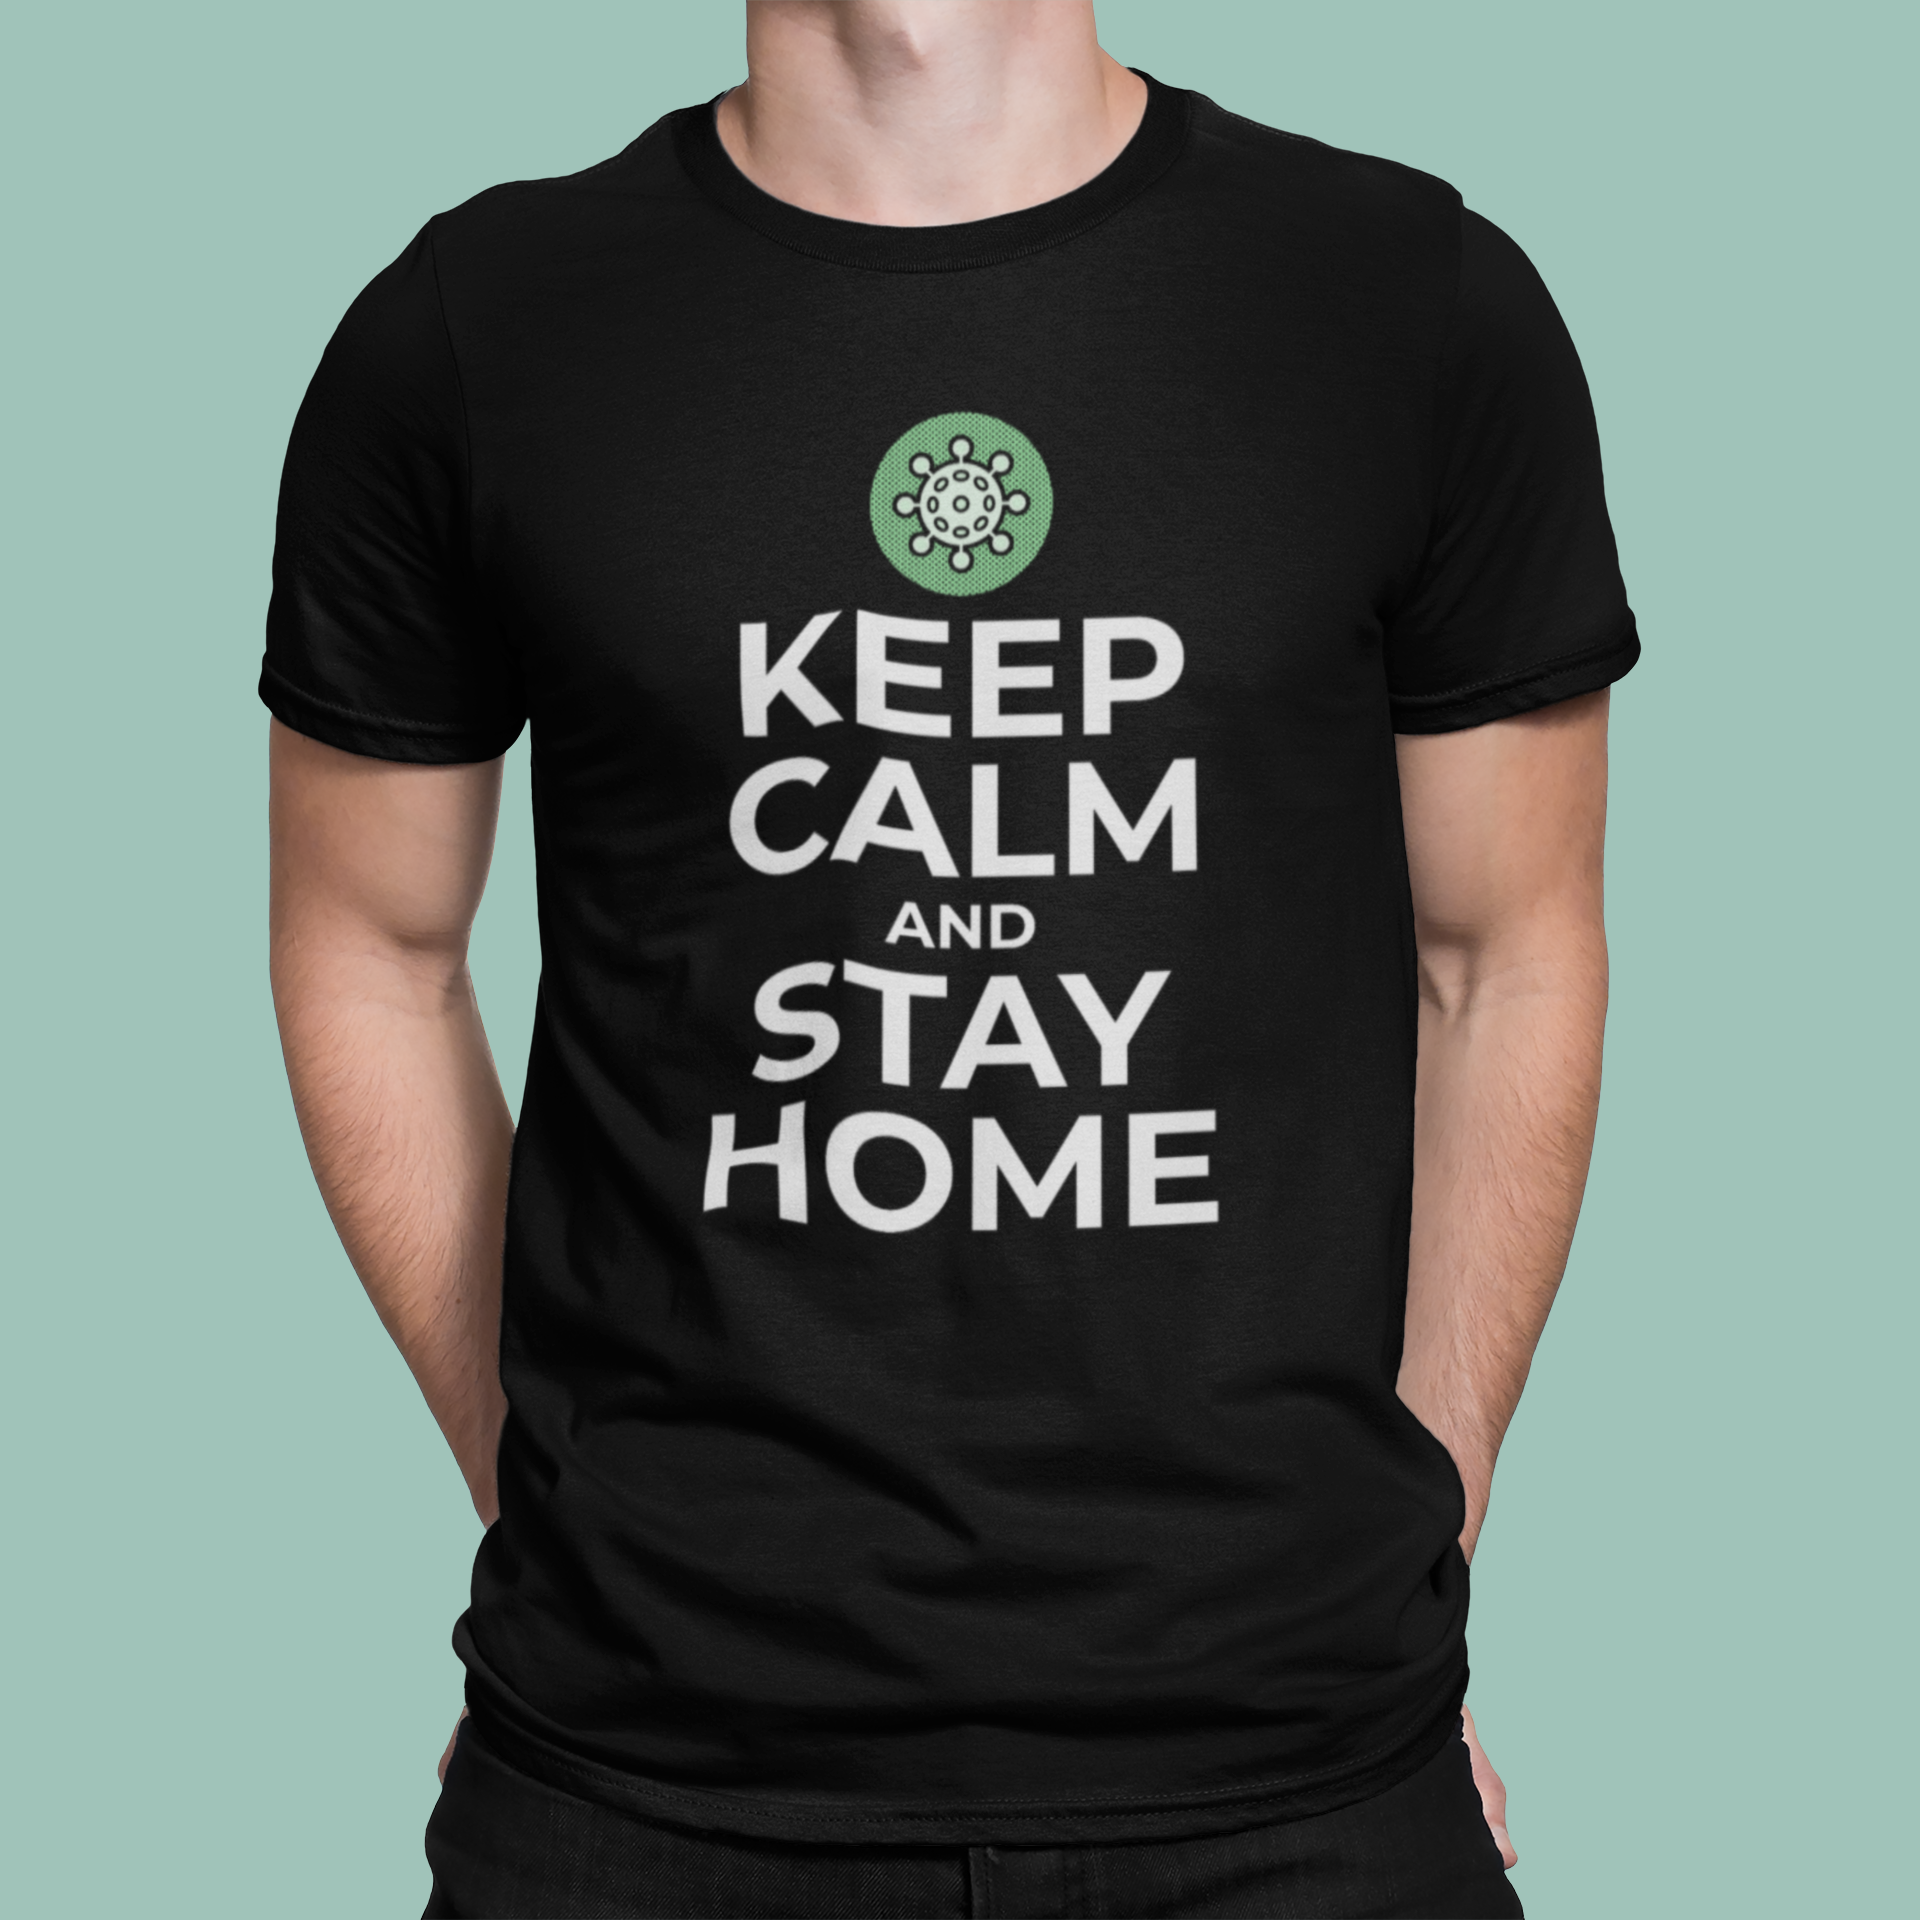 KEEP CALM AND #STAYHOME UNISEX PREMIUM SHIRT